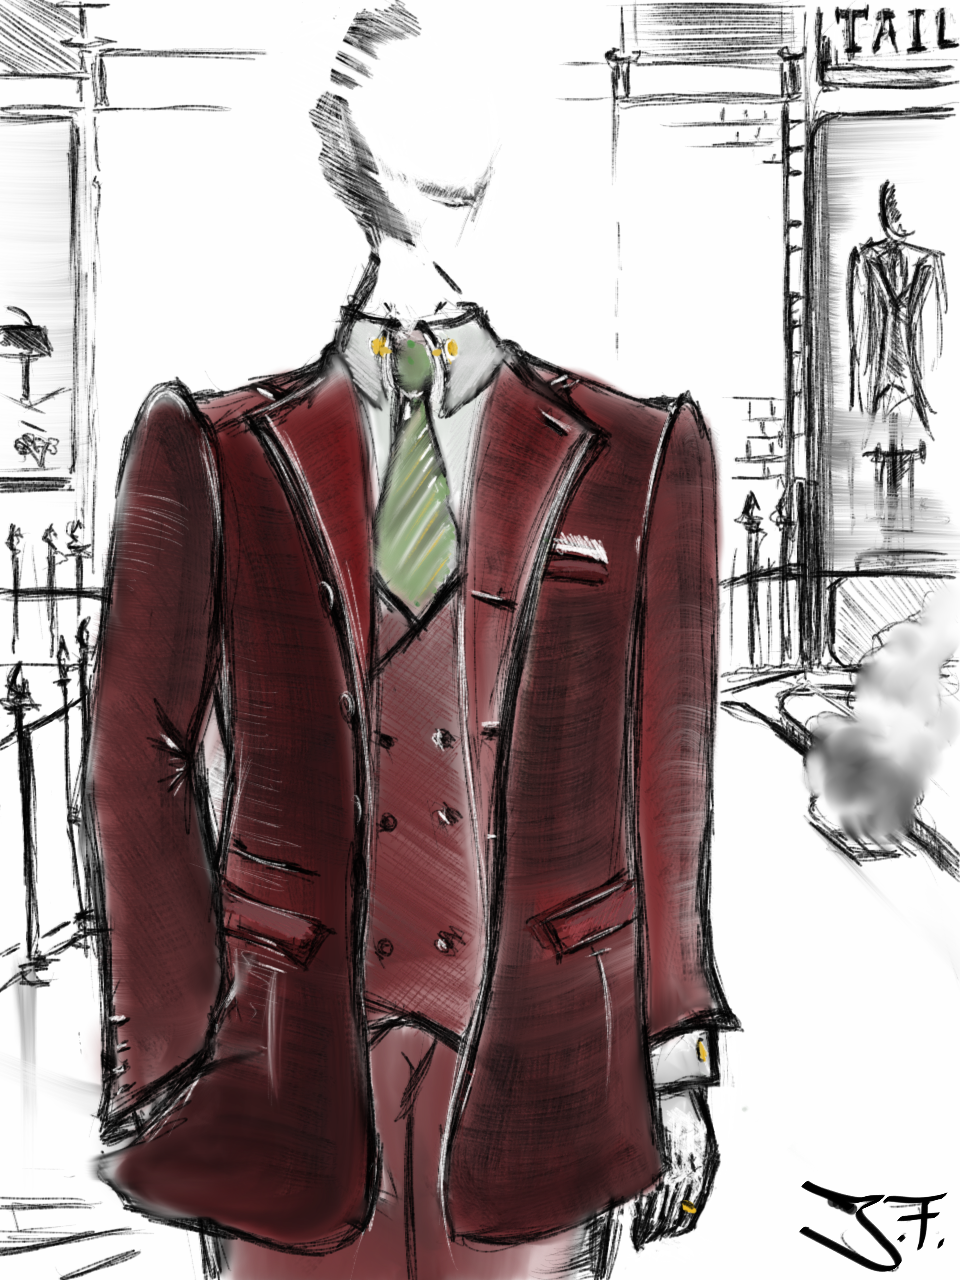 Why Educate Yourself About Suiting? An editorial by John Frose